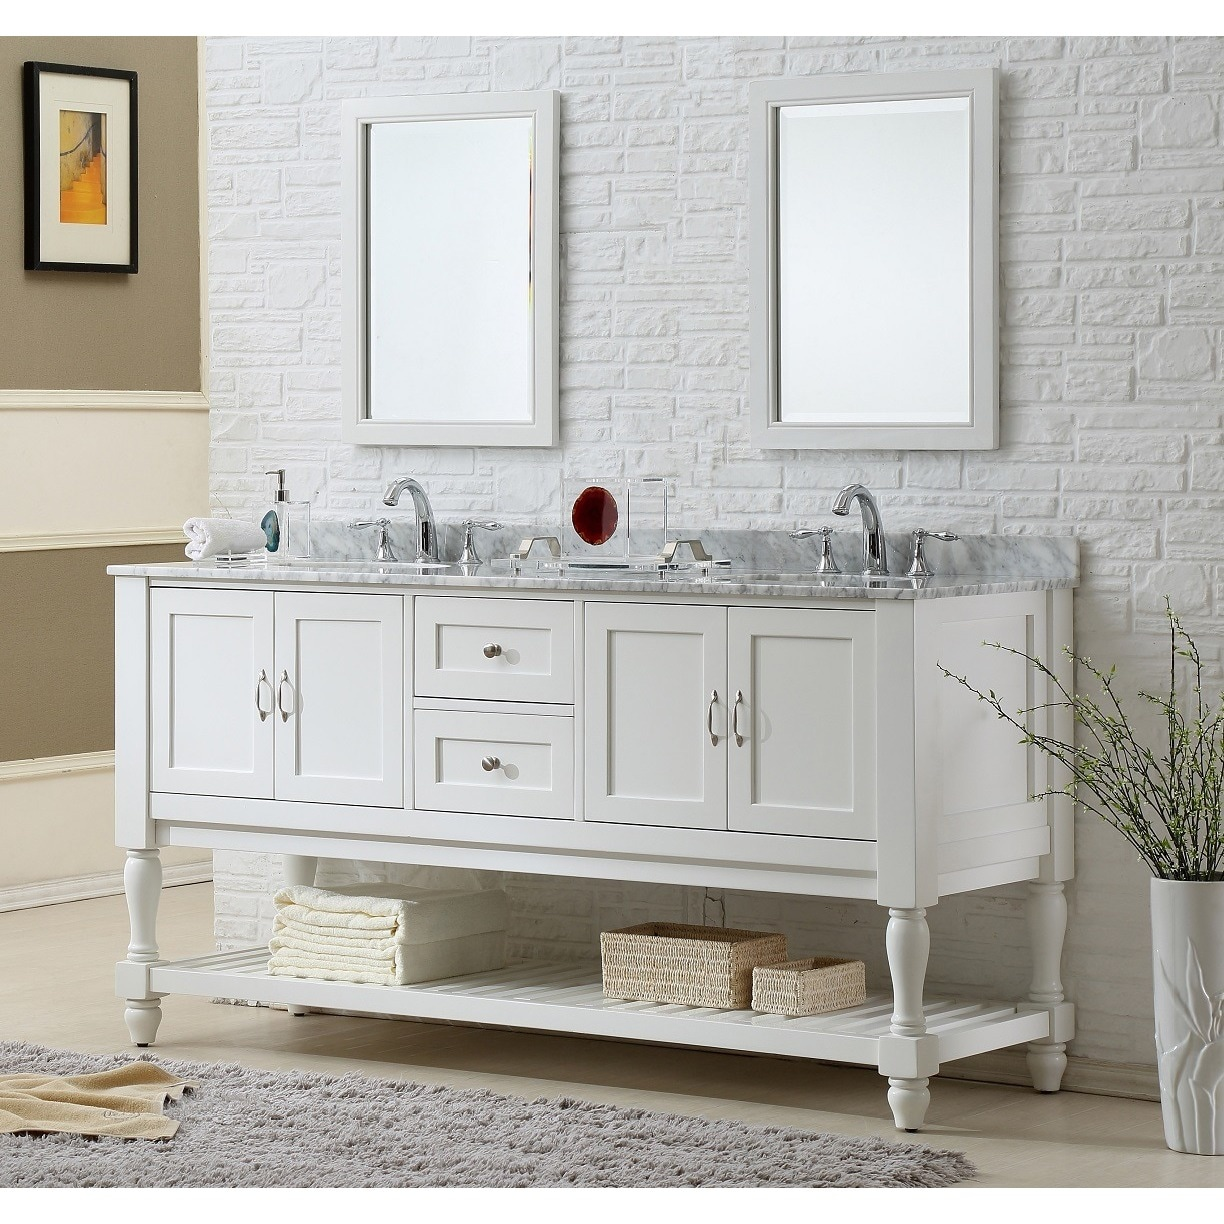 vanity and double easy designs fun cupboards that sink sharing make chalboard